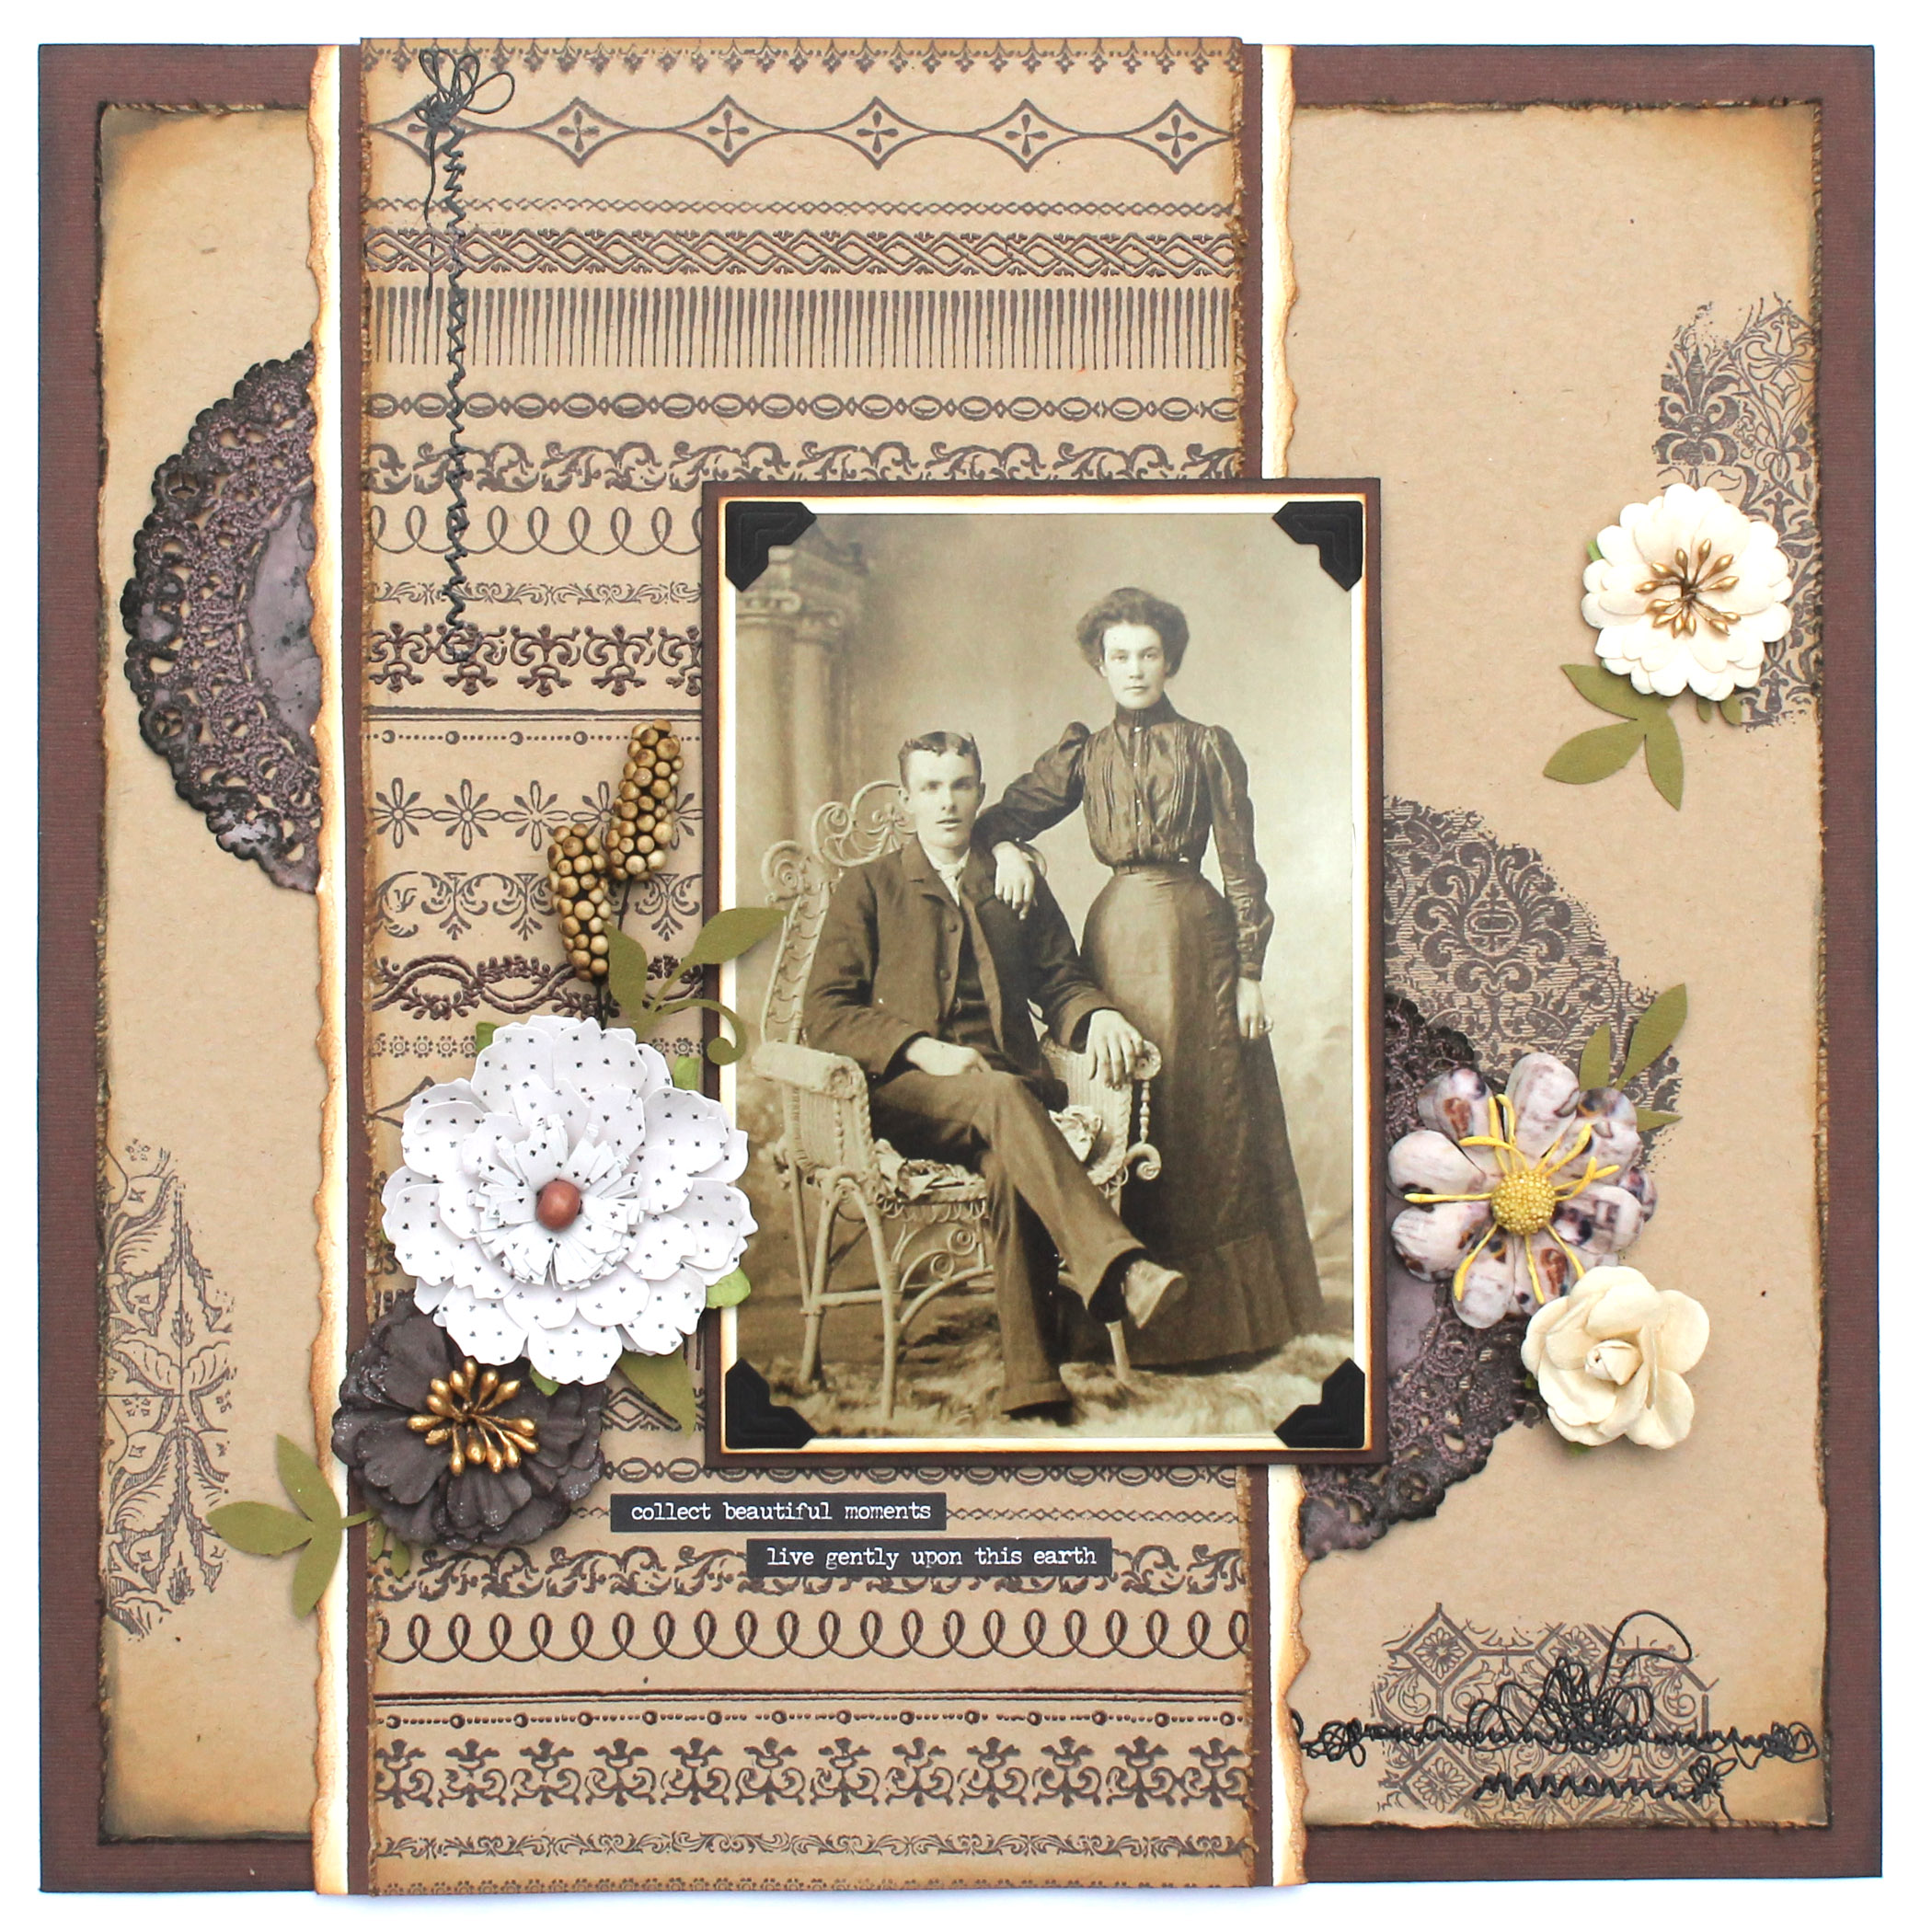 Heritage Layout designed by Tracy McLennon featuring Stampers Anonymous